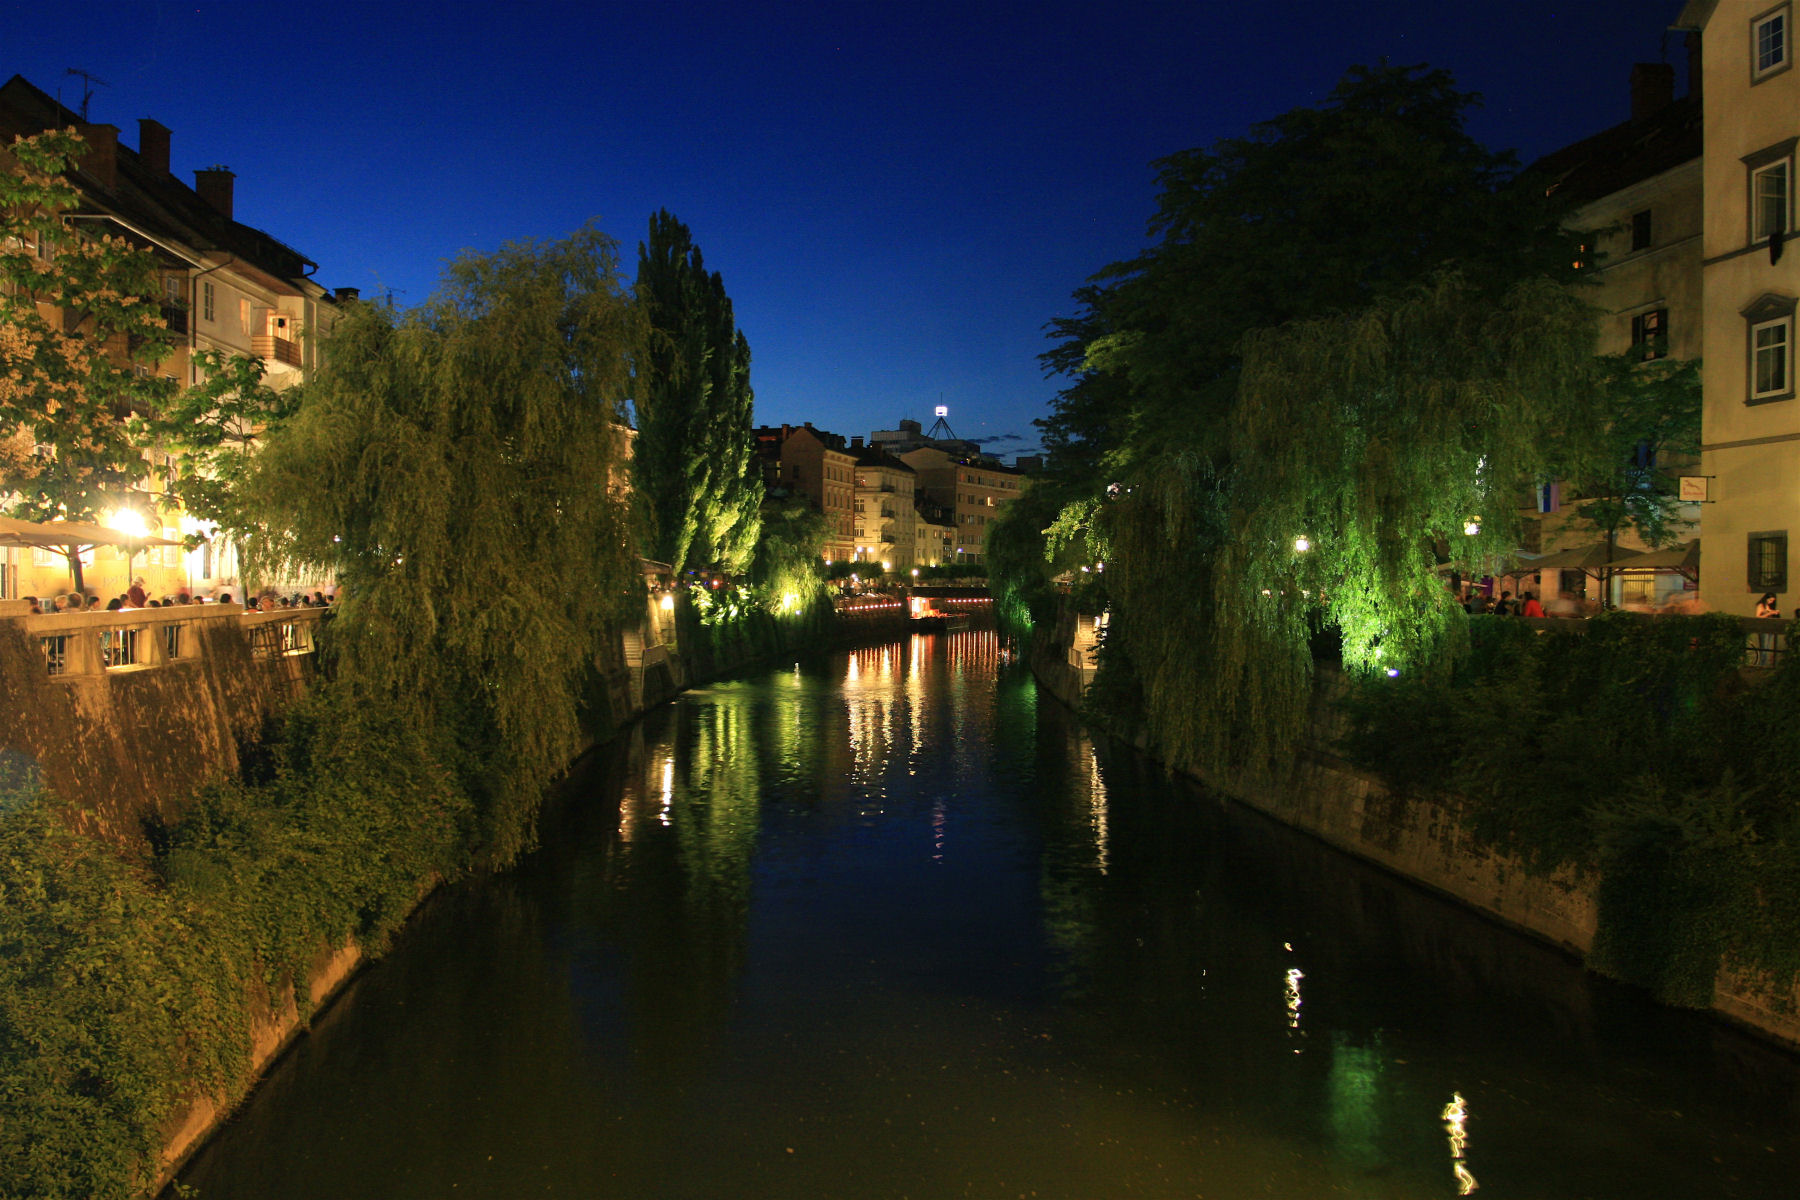 River Ljubljanica through the old town of Ljubljana, Slovenia at night